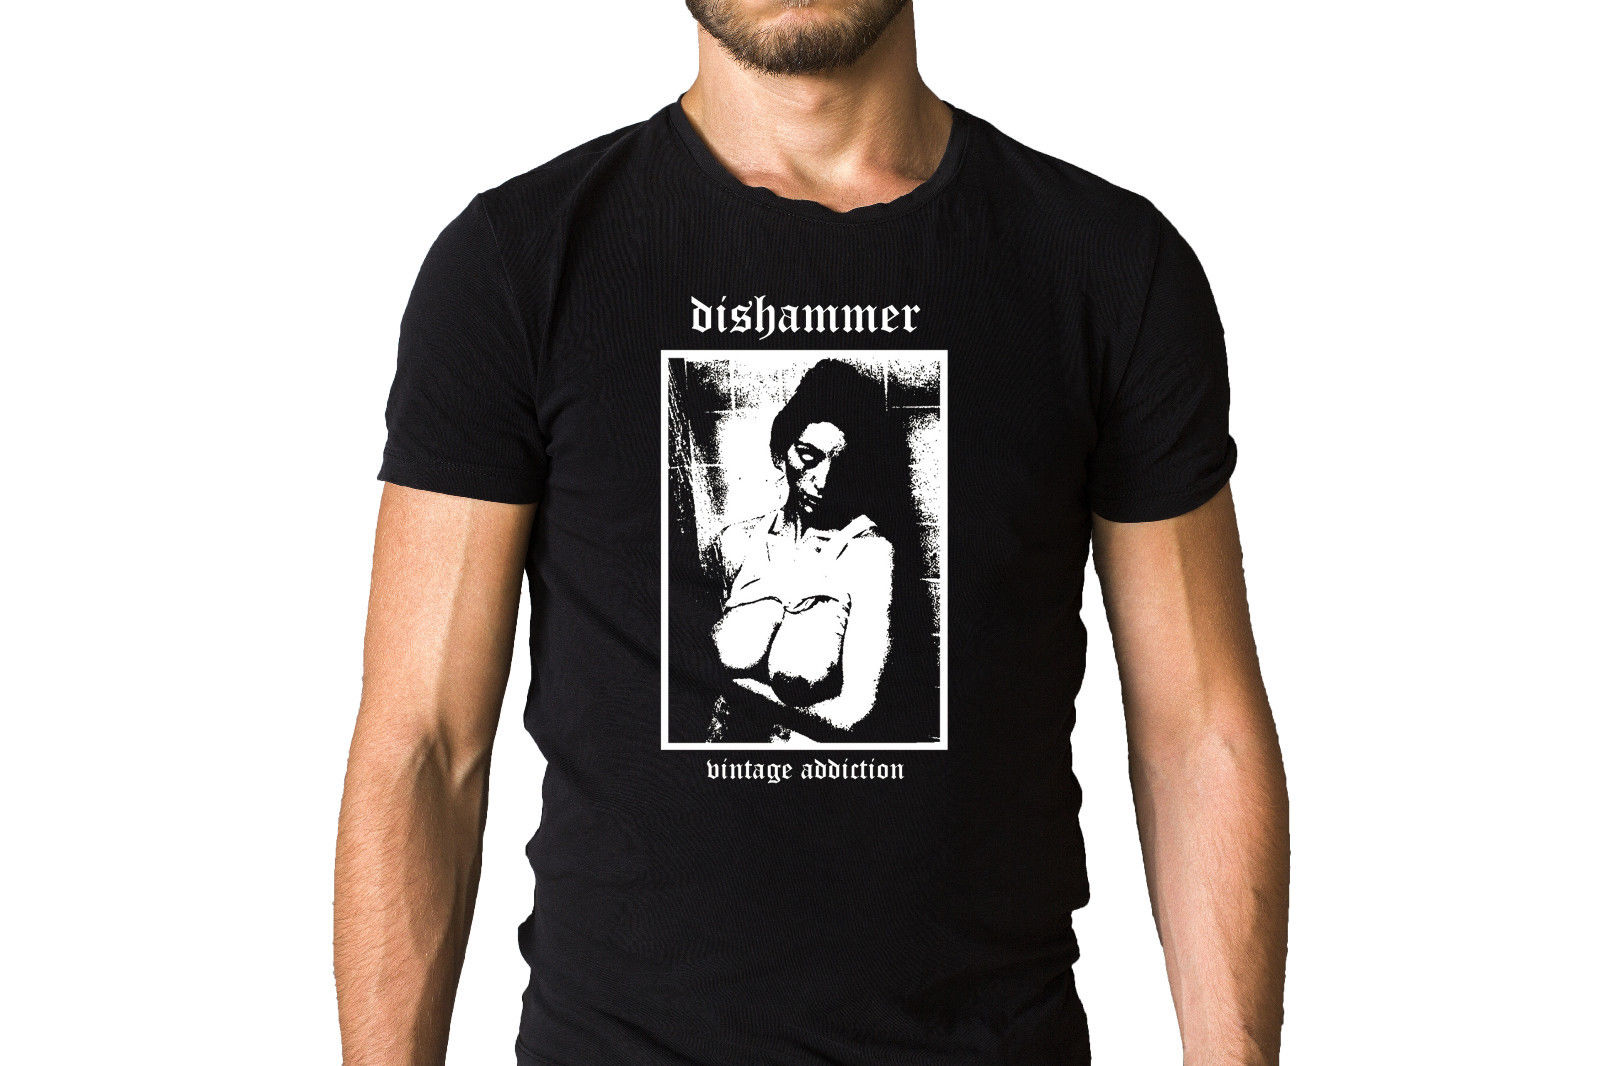 Dishammer Vintage Addiction 2008 Album Cover T-Shirt Shirts Summer Short Sleeve Novelty Round Neck Teenage Pop Top Tee